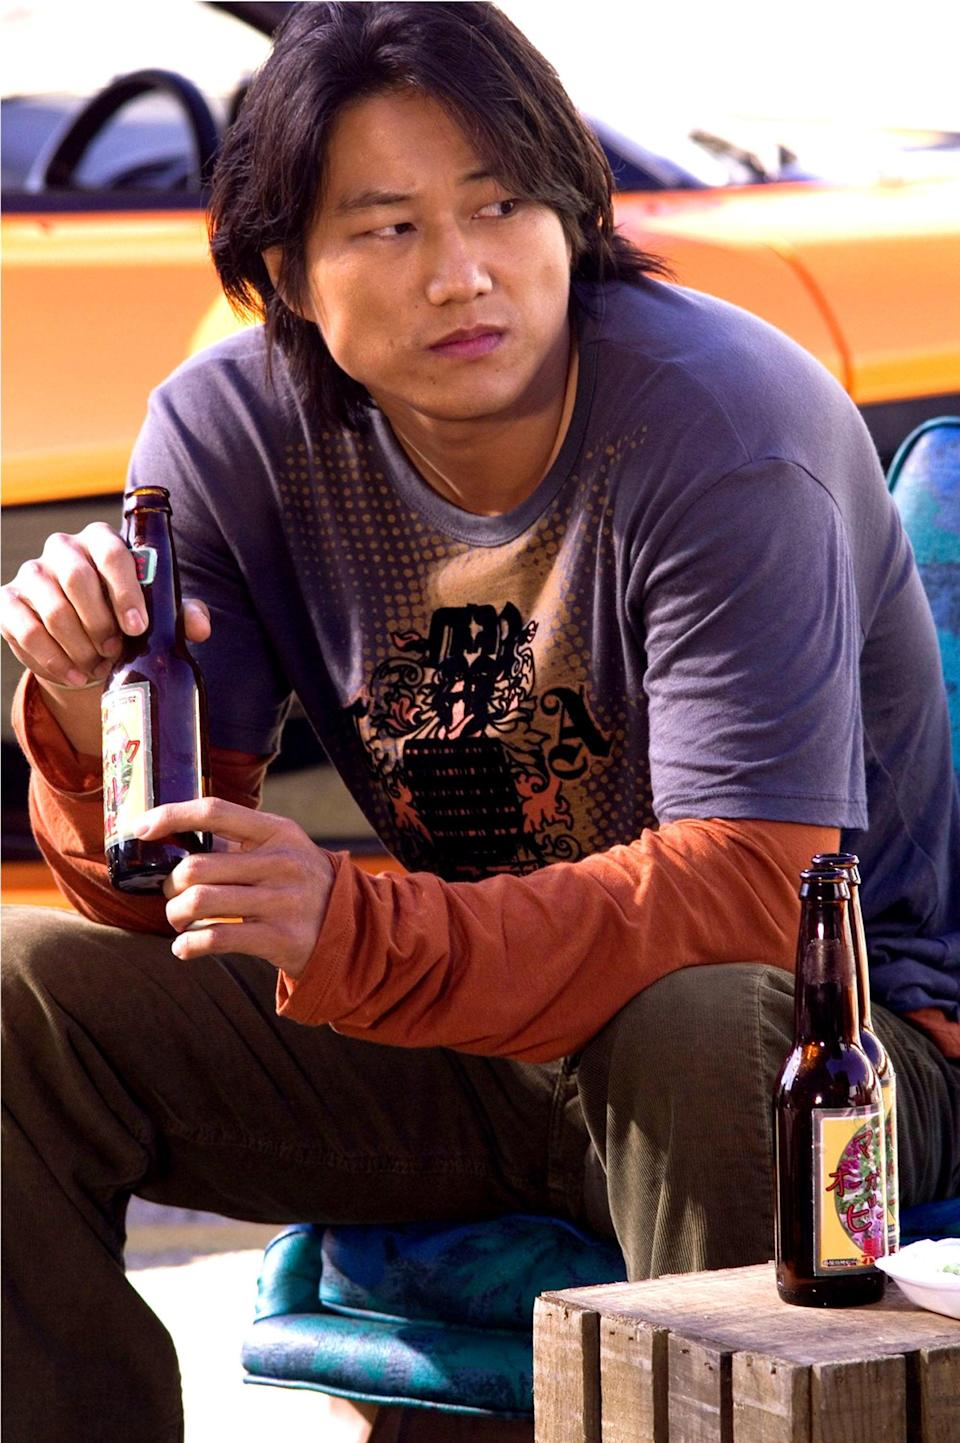 Sung Kang takes some time away from the action in 'Tokyo Drift' (Sidney Baldwin/Universal/Kobal/Shutterstock)